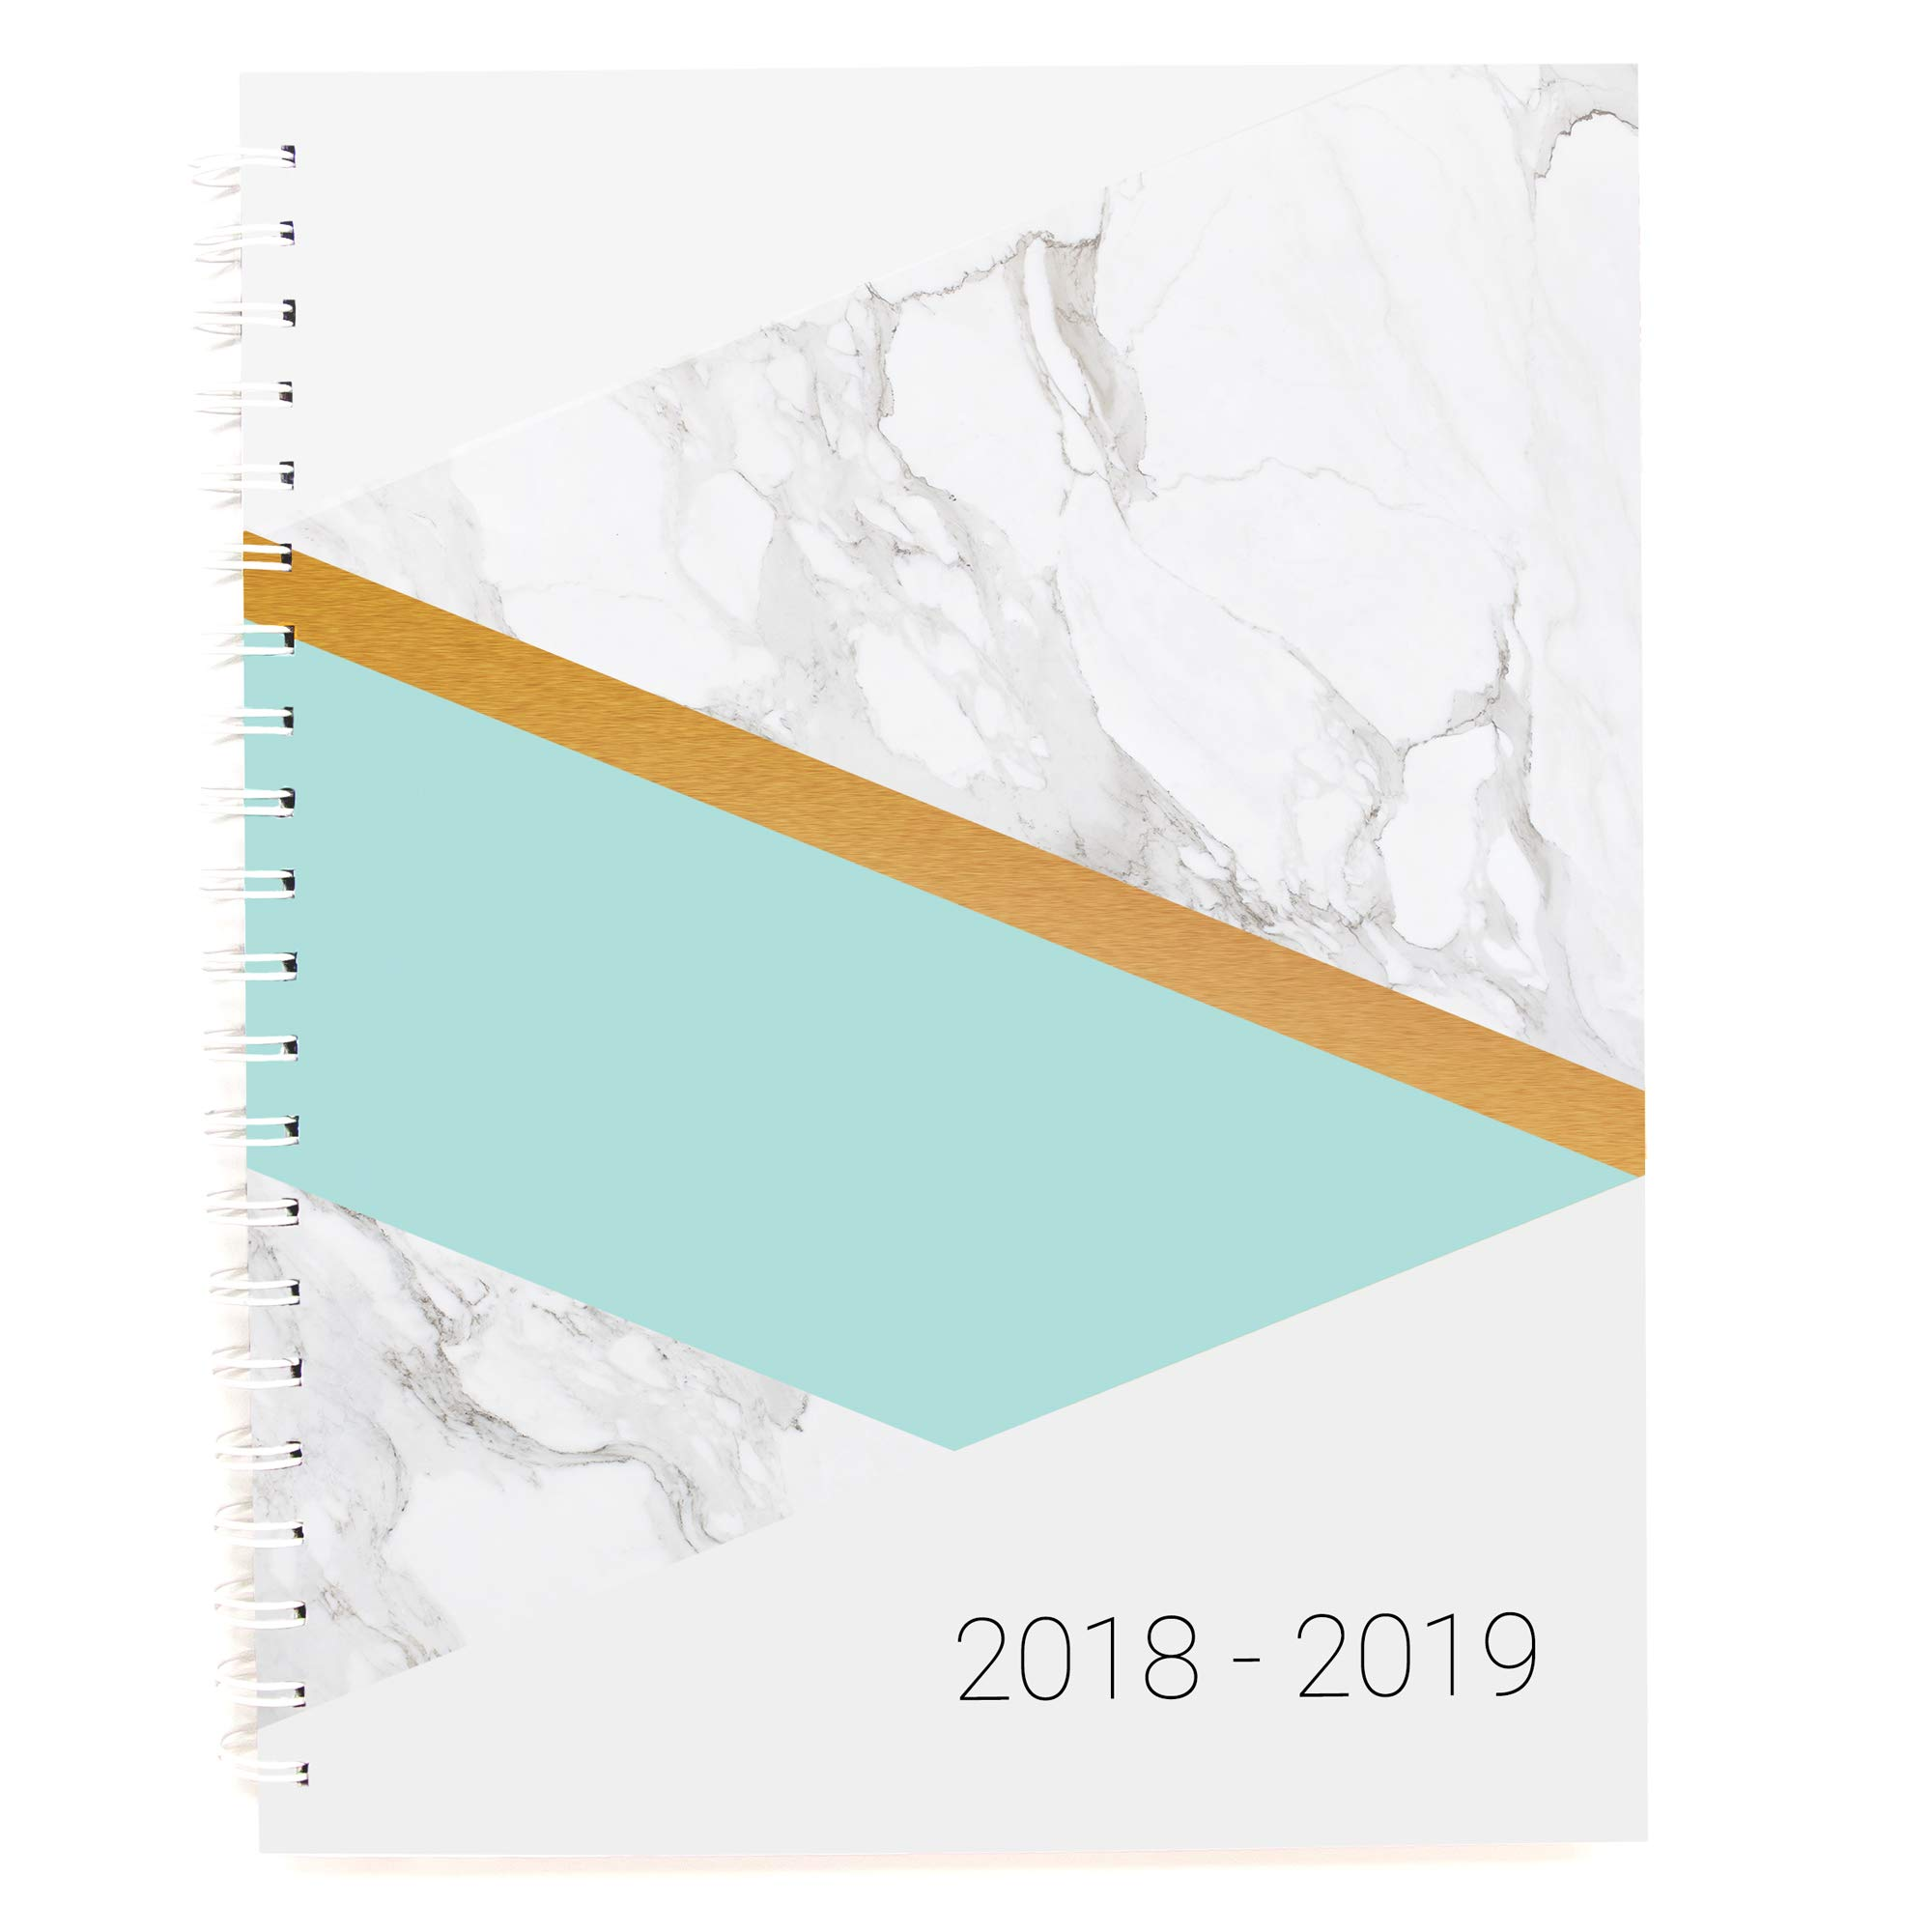 Planner 2018-2019 Monthly Weekly Academic Planner Appointment Book, 8.5 x 11 inches, Premium Paper, Chic Fashionable Elegant Student Planner (AJWP-113)